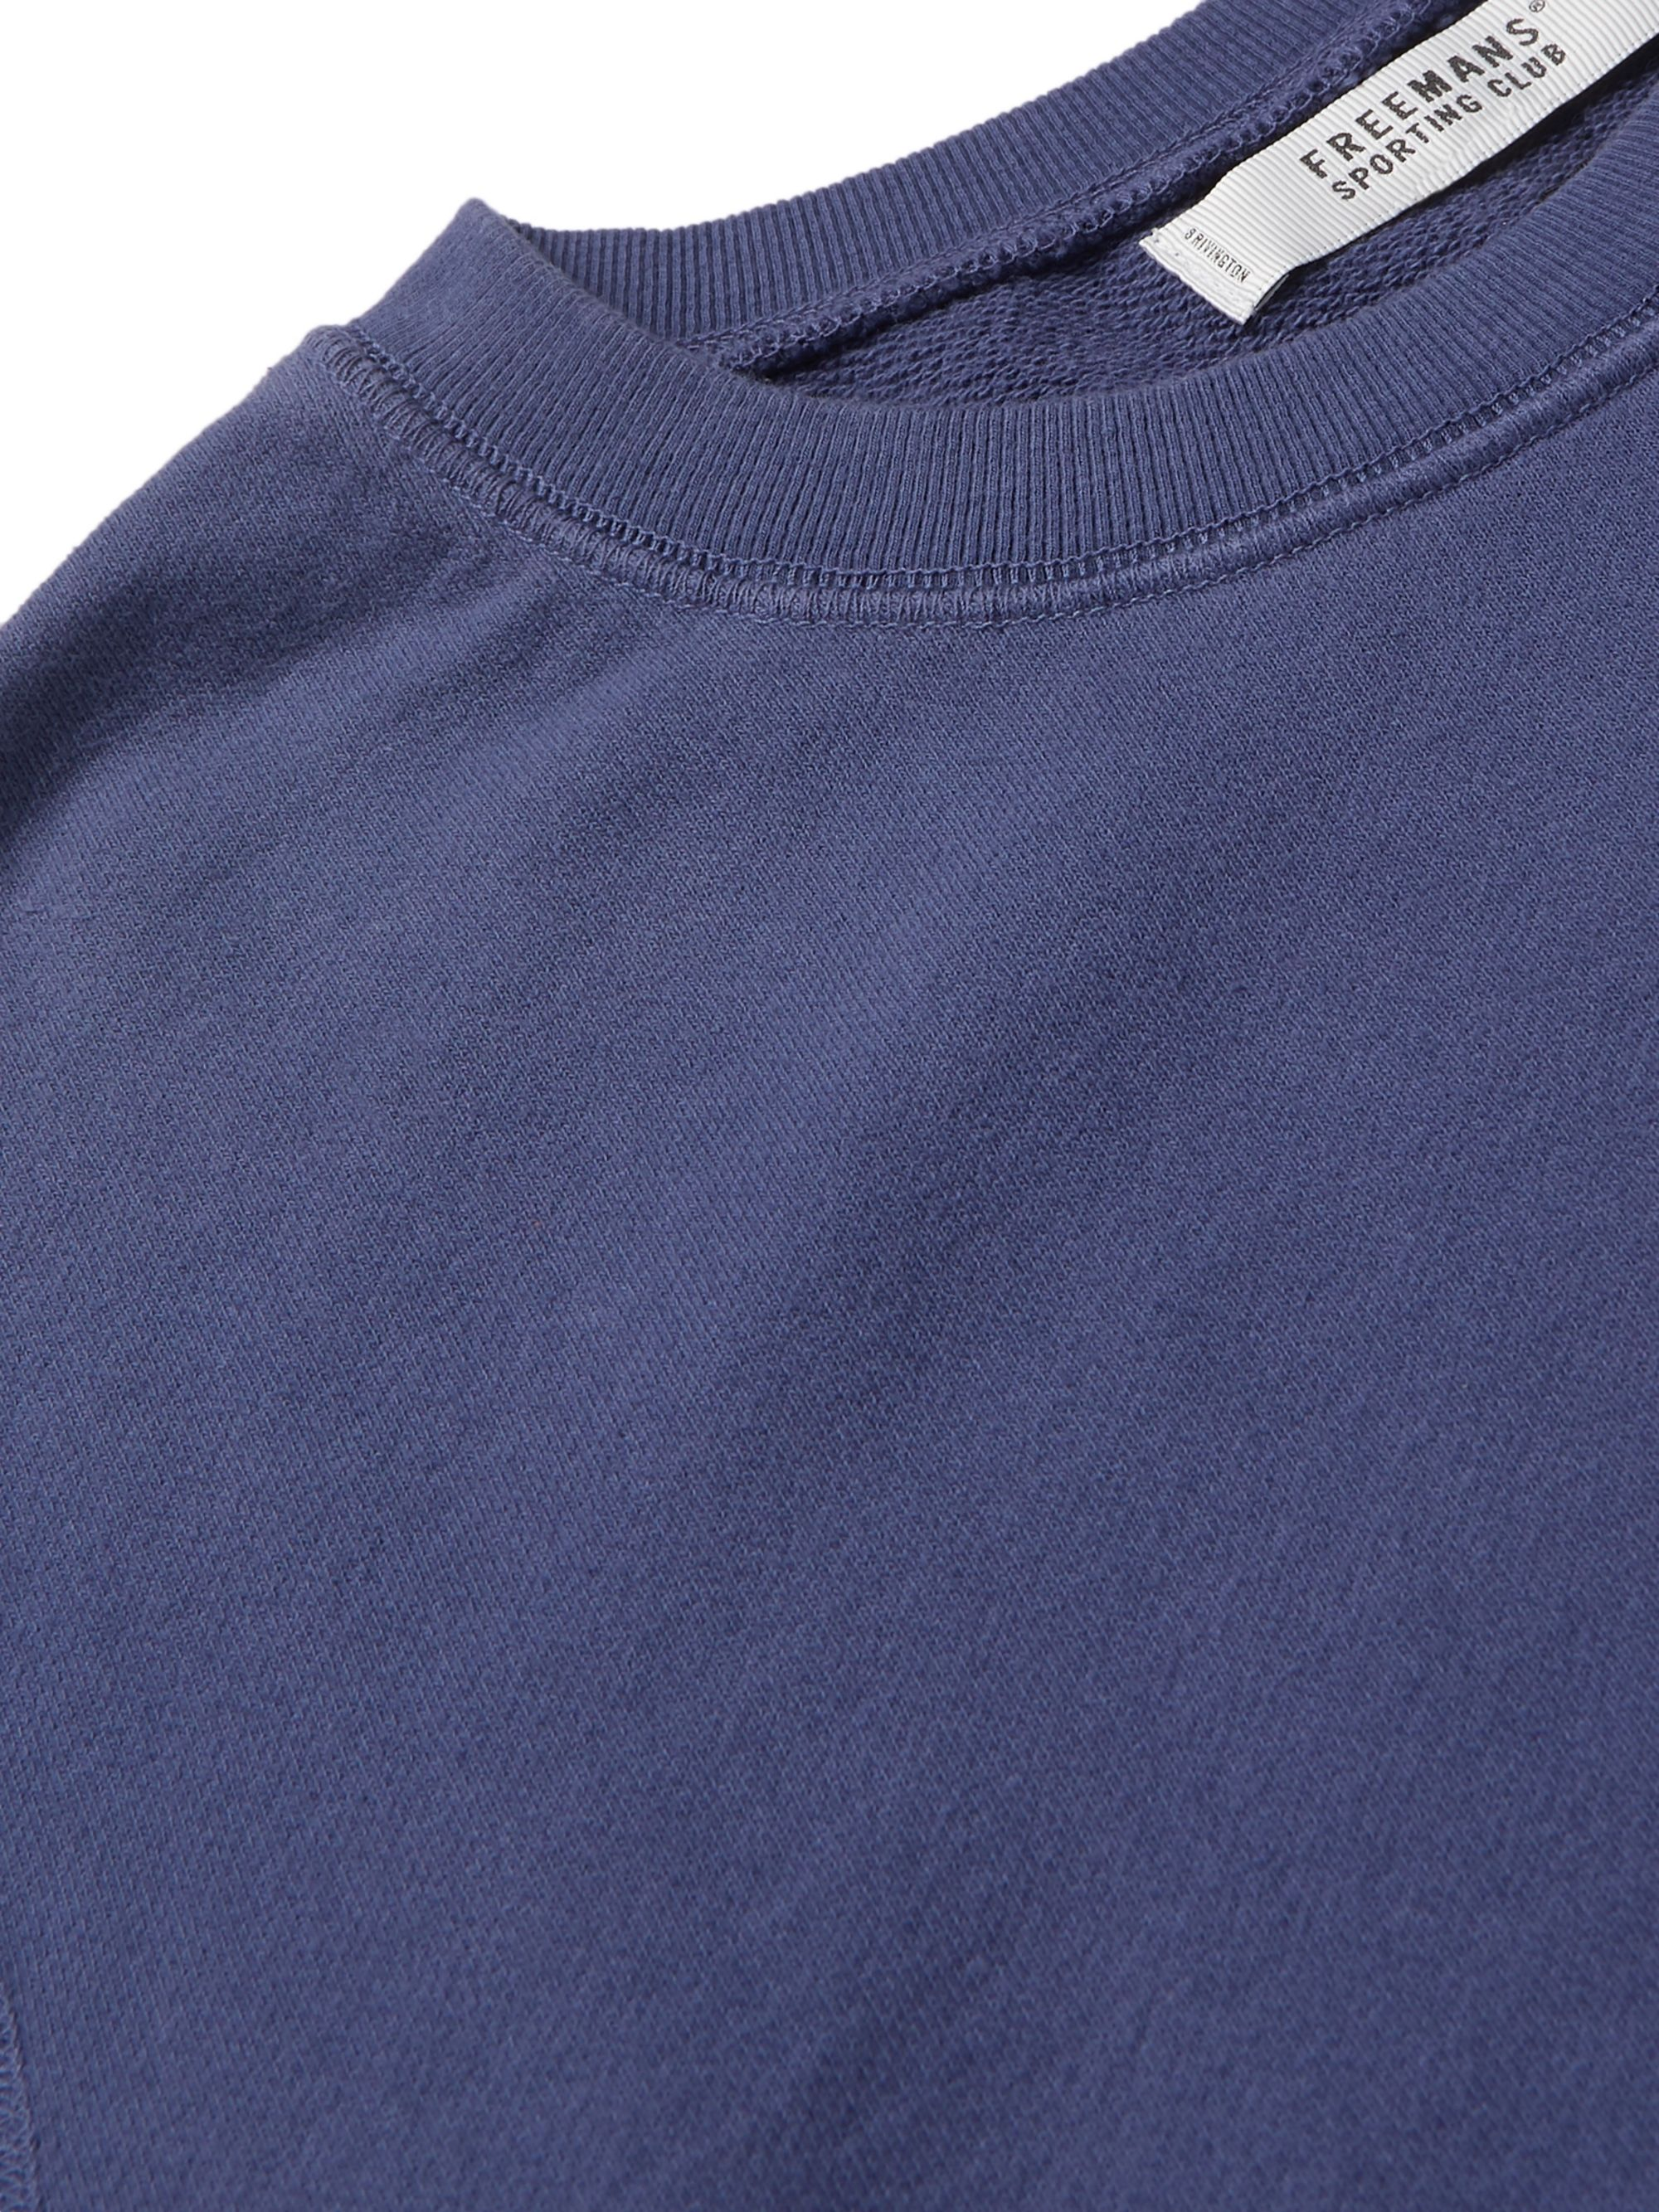 Freemans Sporting Club Garment-Dyed Loopback Cotton-Jersey Sweatshirt